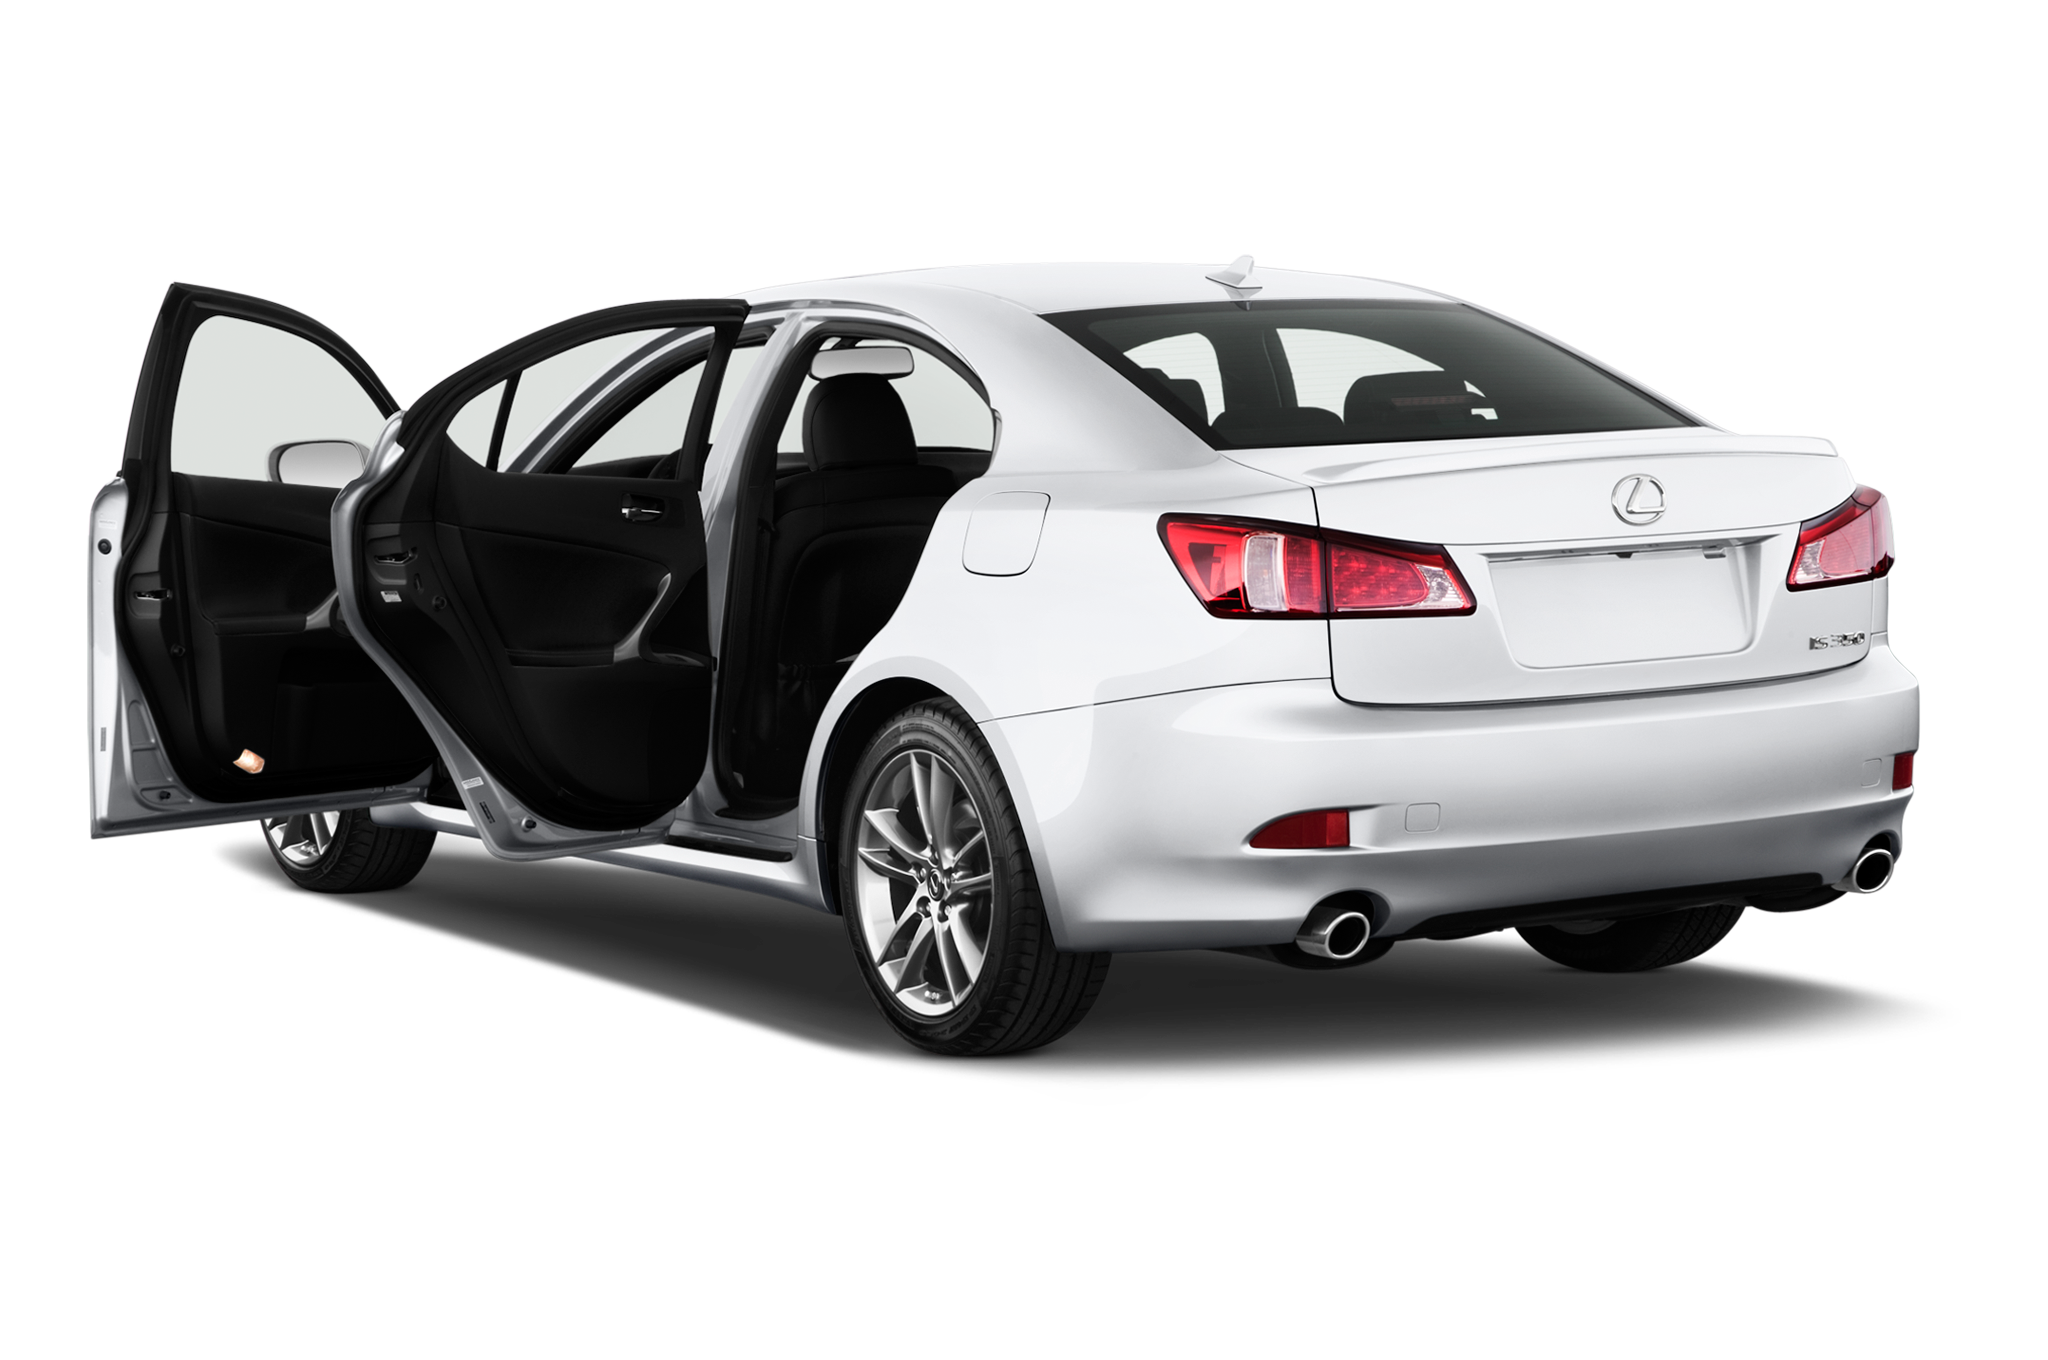 http://st.automobilemag.com/uploads/sites/10/2015/11/2011-lexus-is-350-rwd-sedan-doors.png